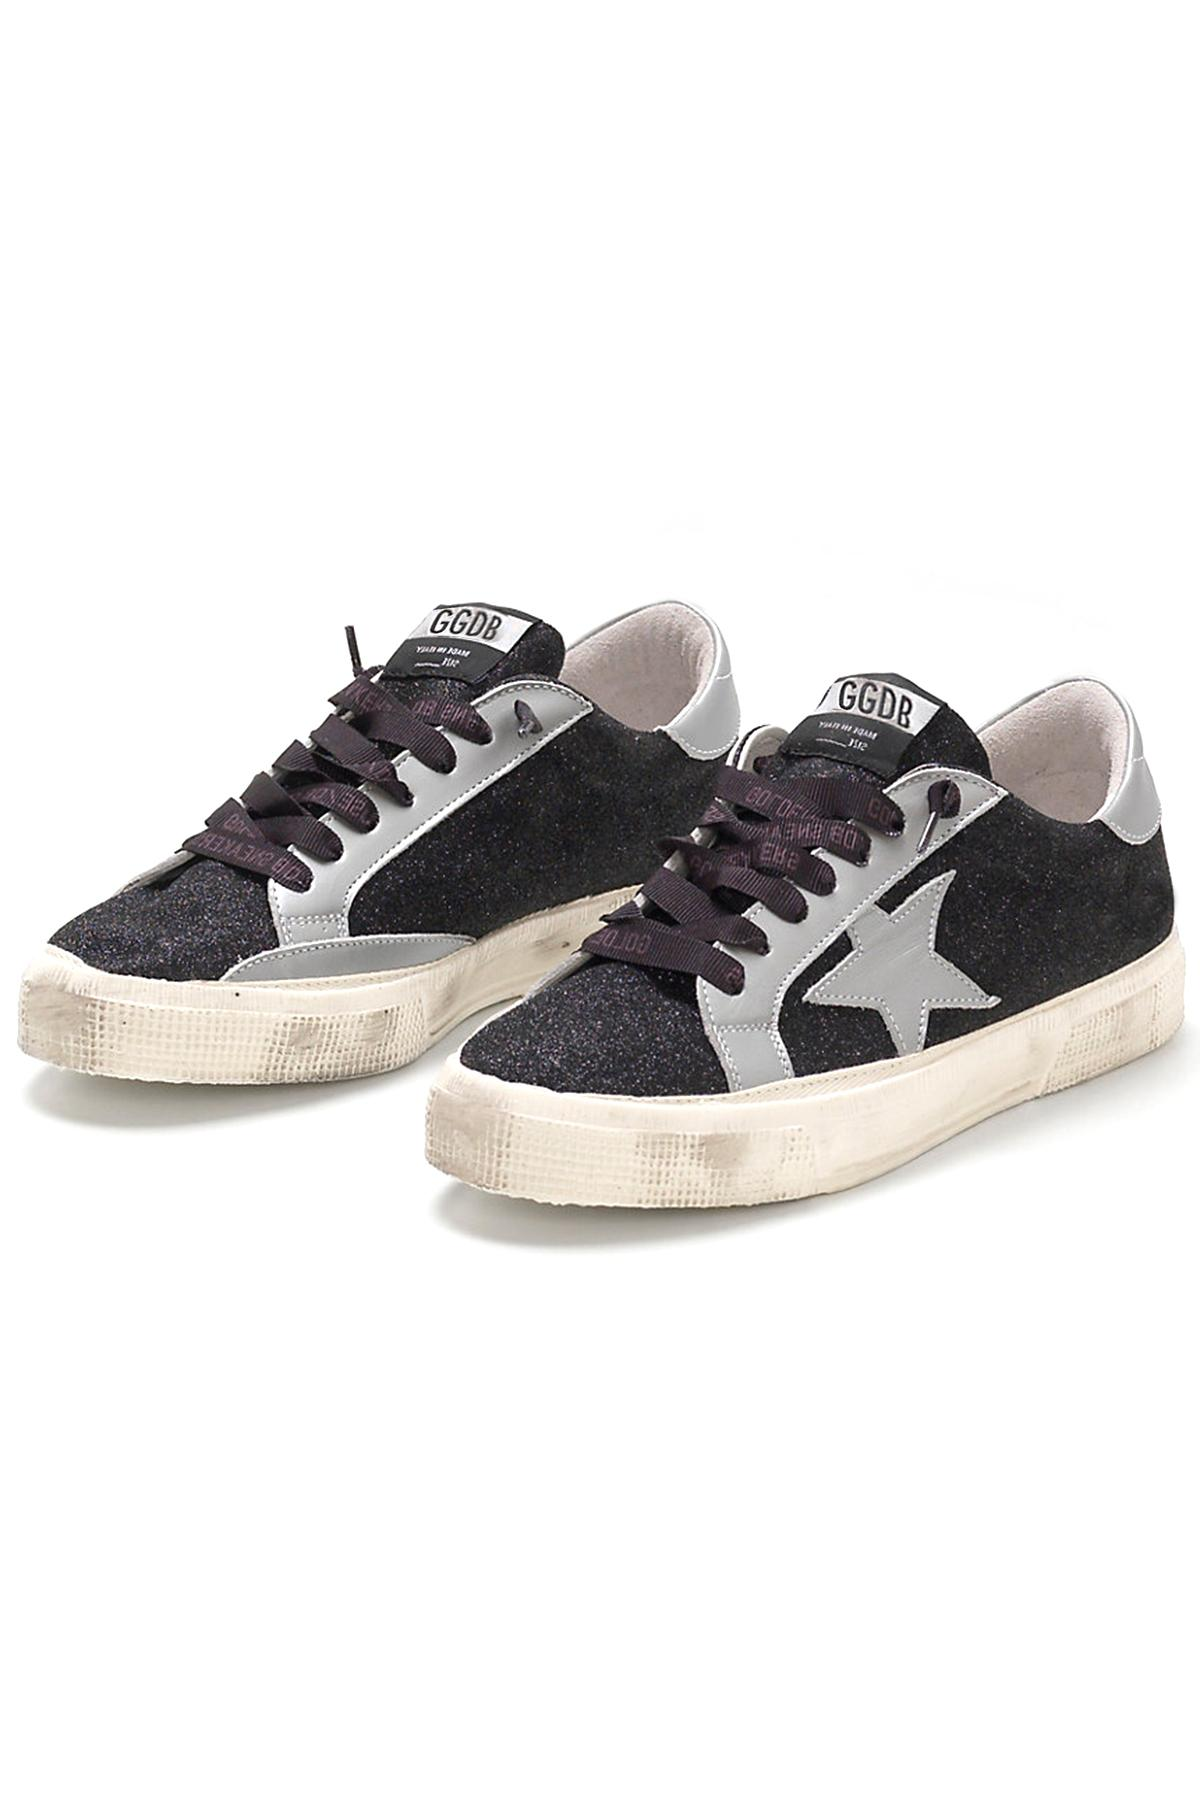 Golden Goose Deluxe Brand Leather May Sneaker in Black Glitter (Black)